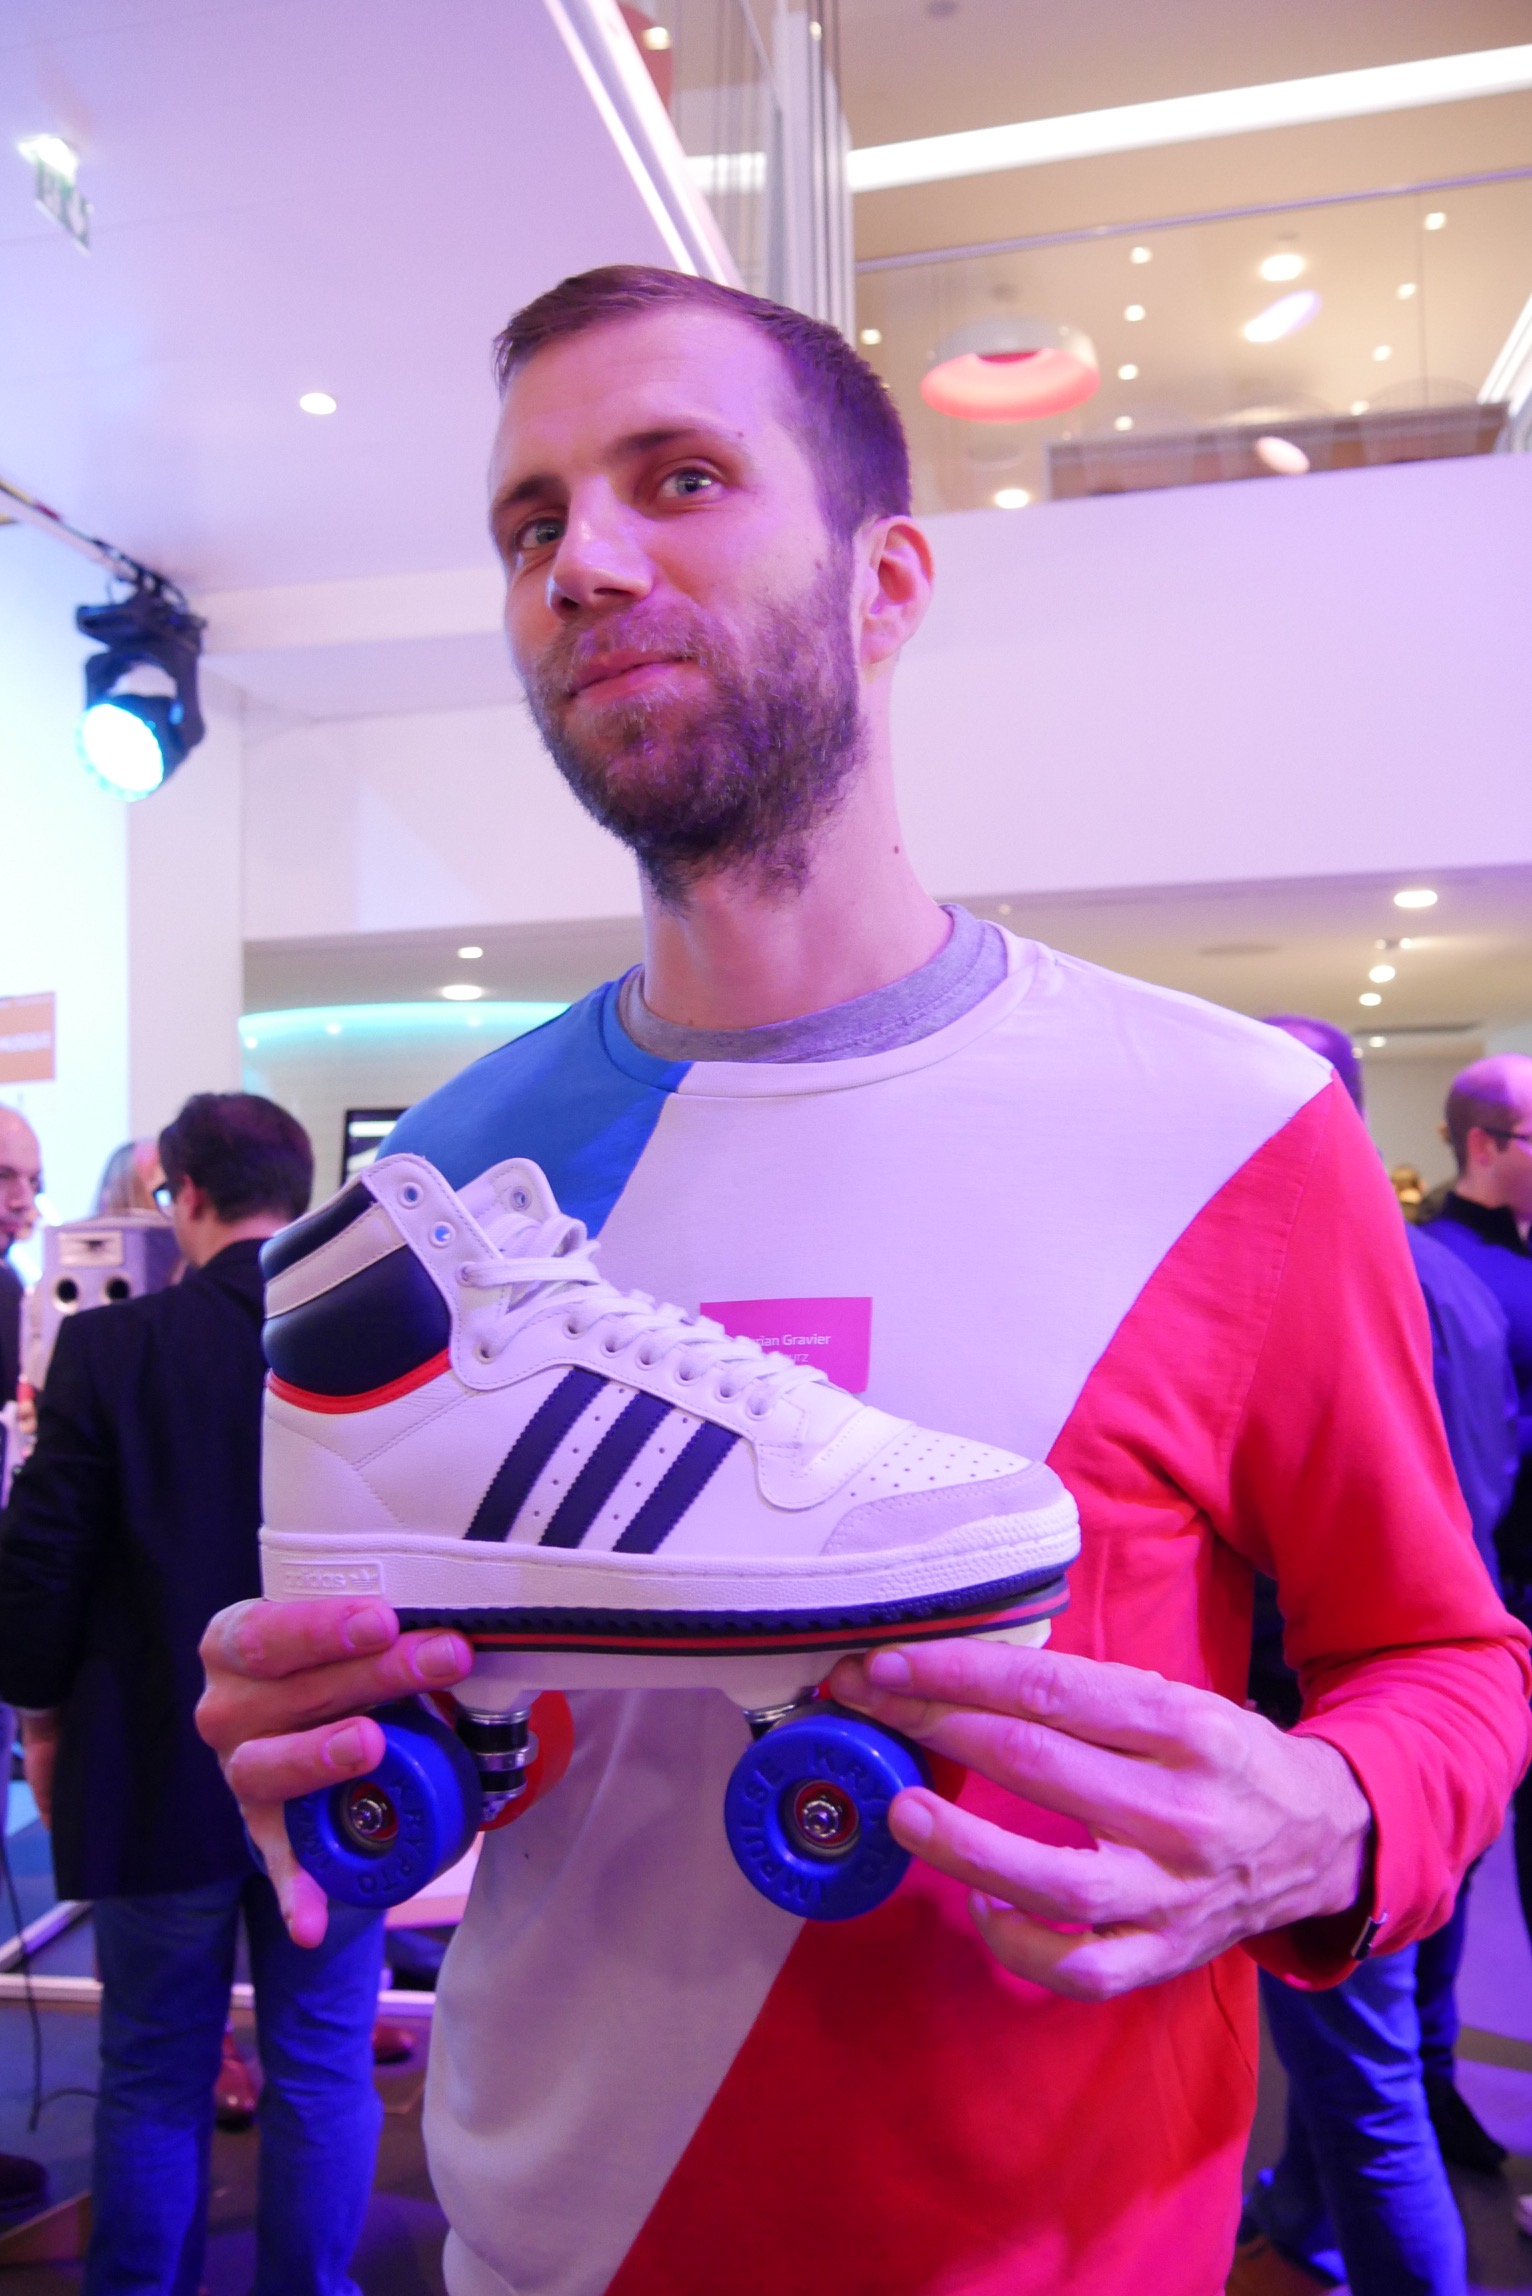 florian-gravier-co-fondateur-flaneurz-danseur-patineur-sneaker-on-wheelz-noel-french-tech-photo-usofparis